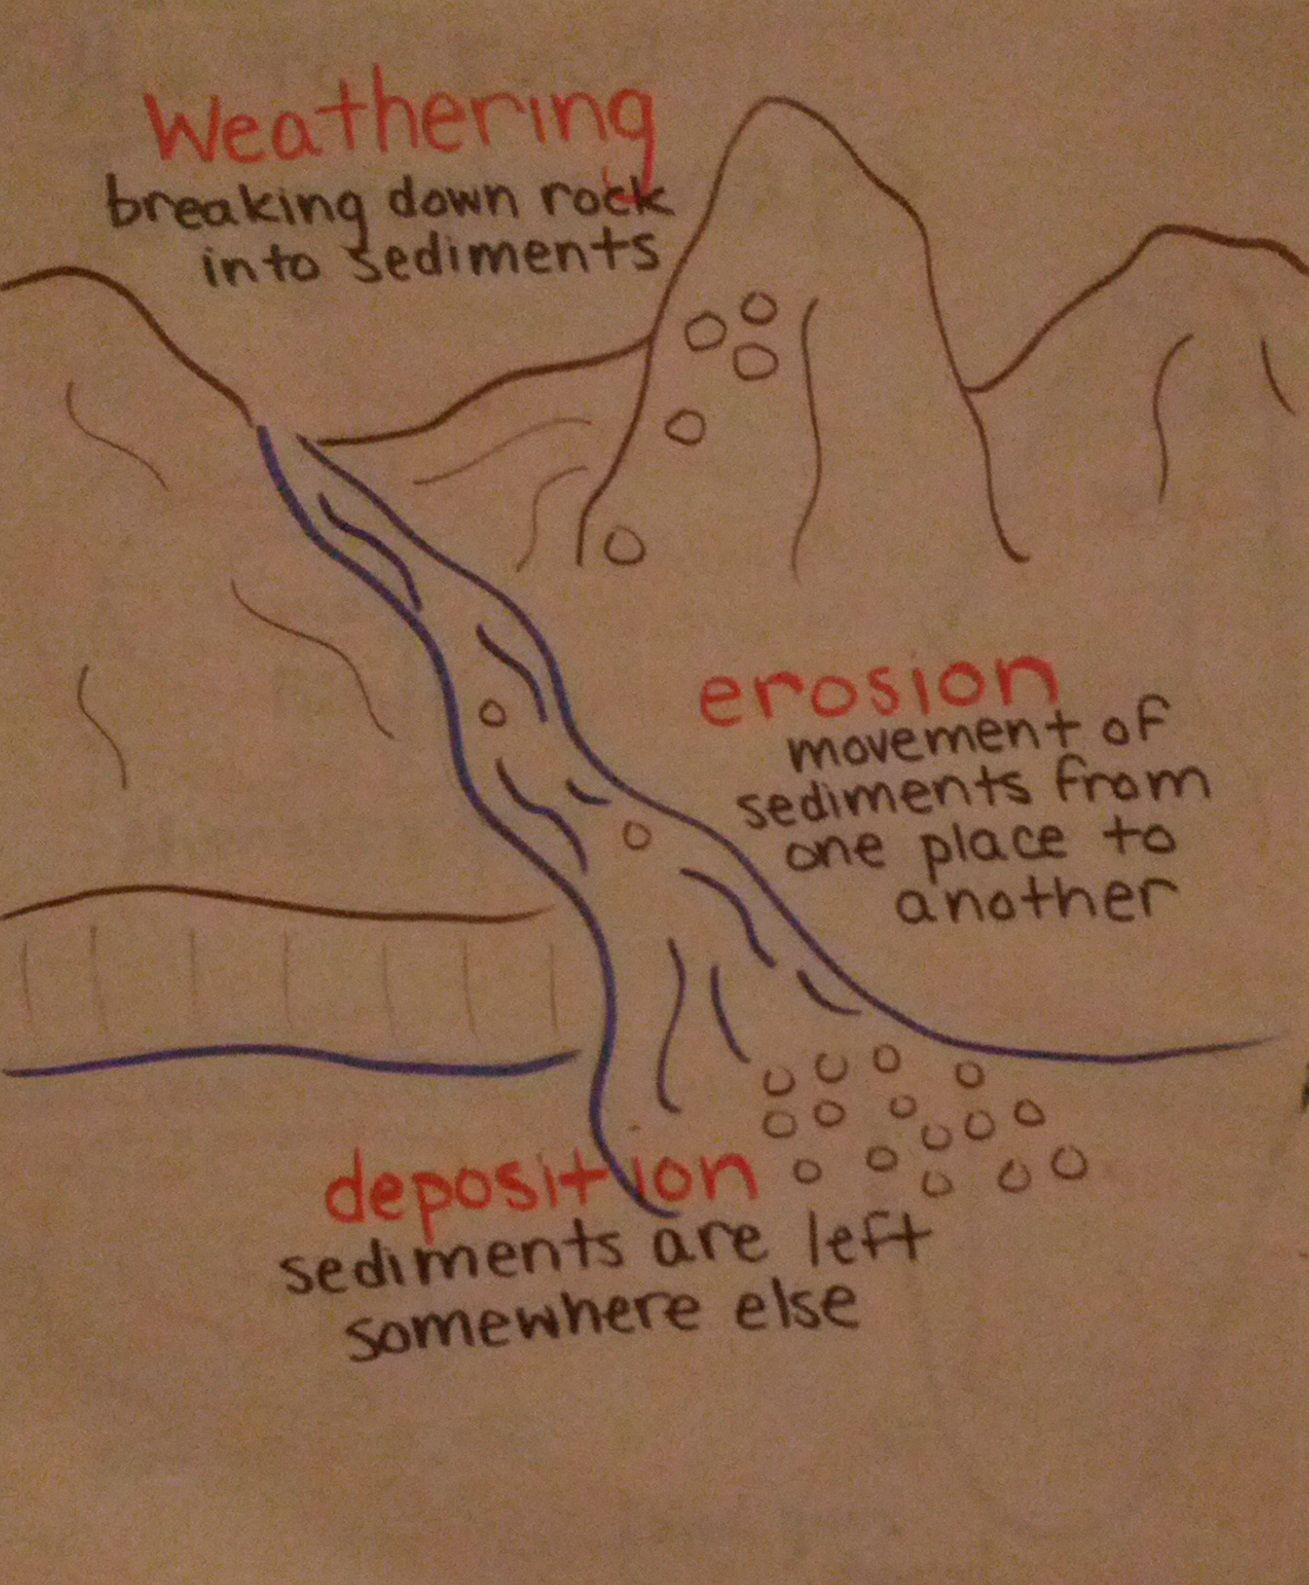 Anchor Chart I Made All About Weathering, Erosion, And Deposition. Pictures  And Definitions